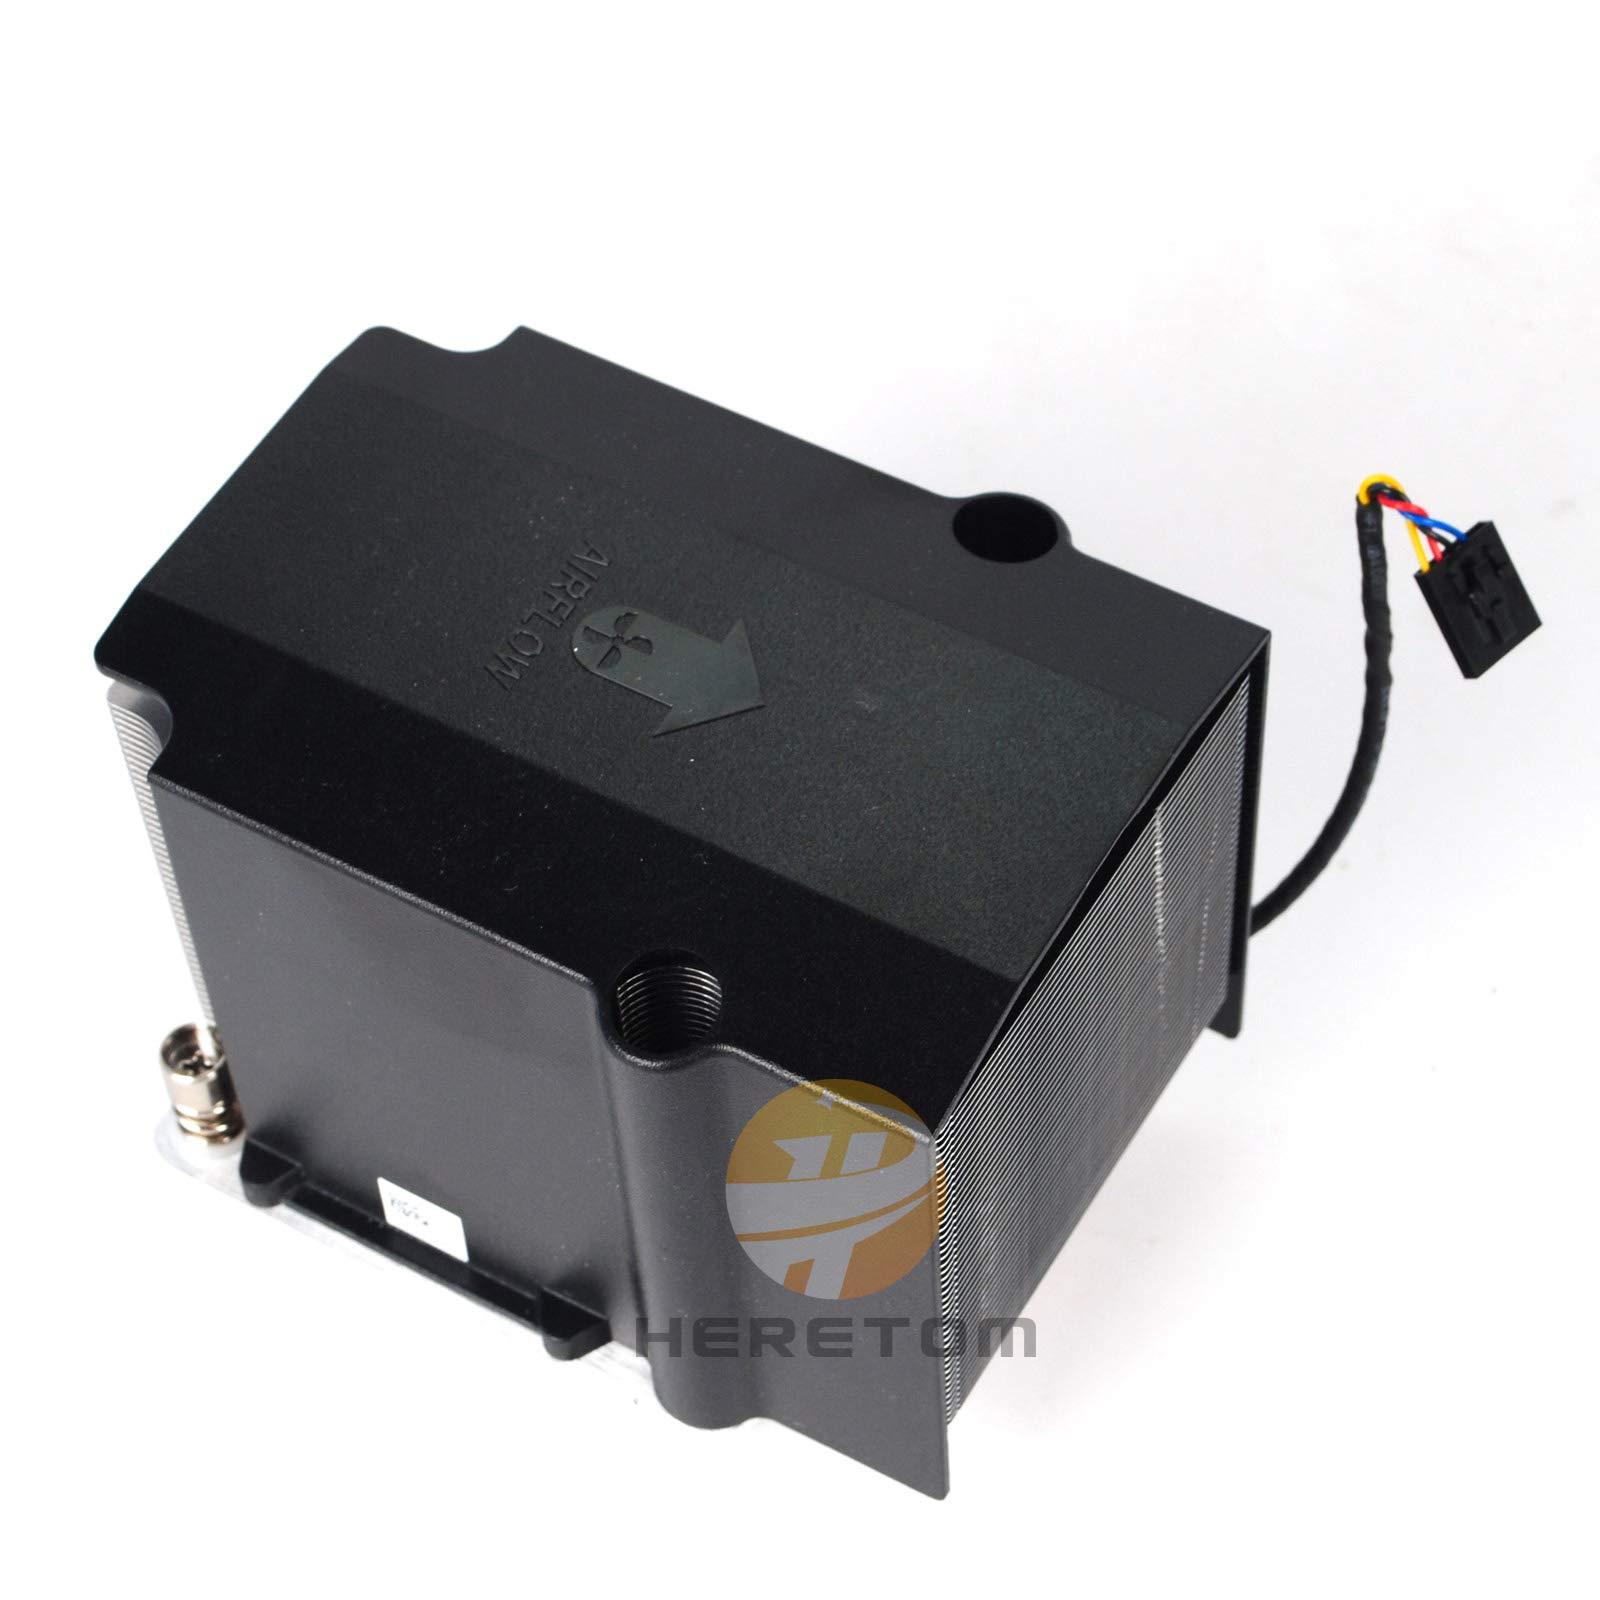 New 06G1DT 6G1DT Heat Sink and Fan for DELL T7810 T7910